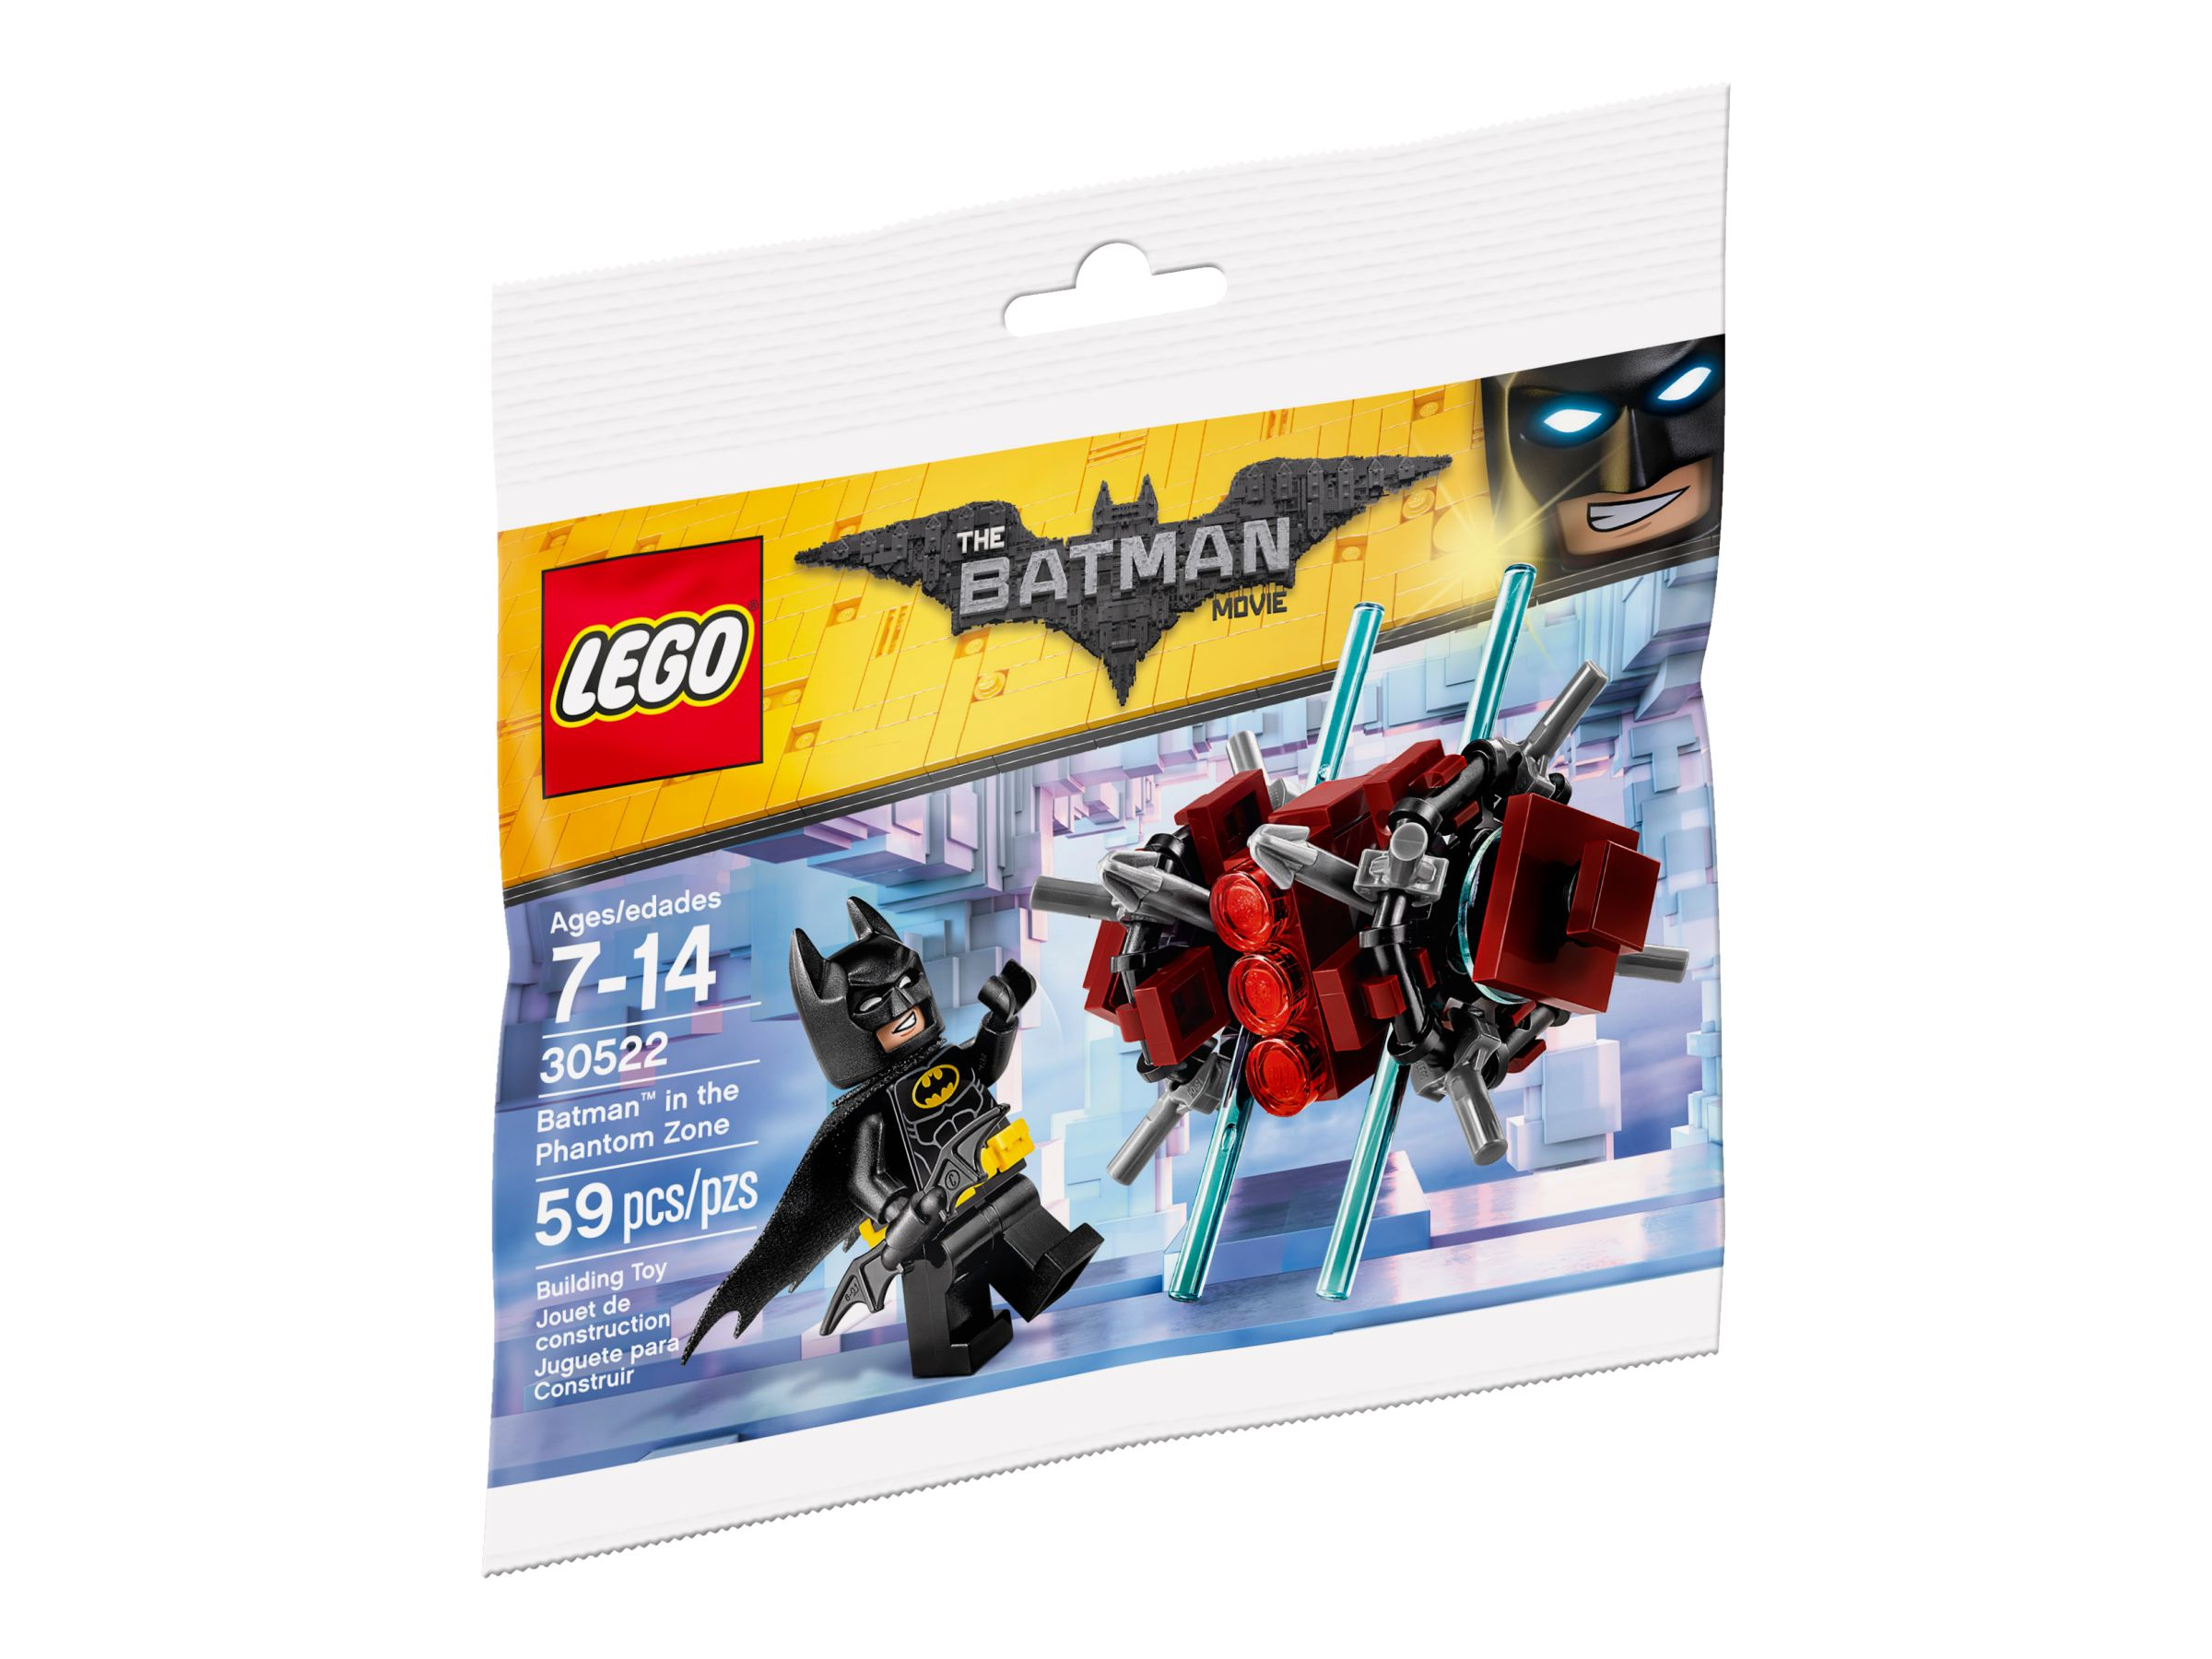 LEGO The LEGO Batman Movie 30522 Batman™ in der Phantom Zone LEGO_30522_alt1.jpg